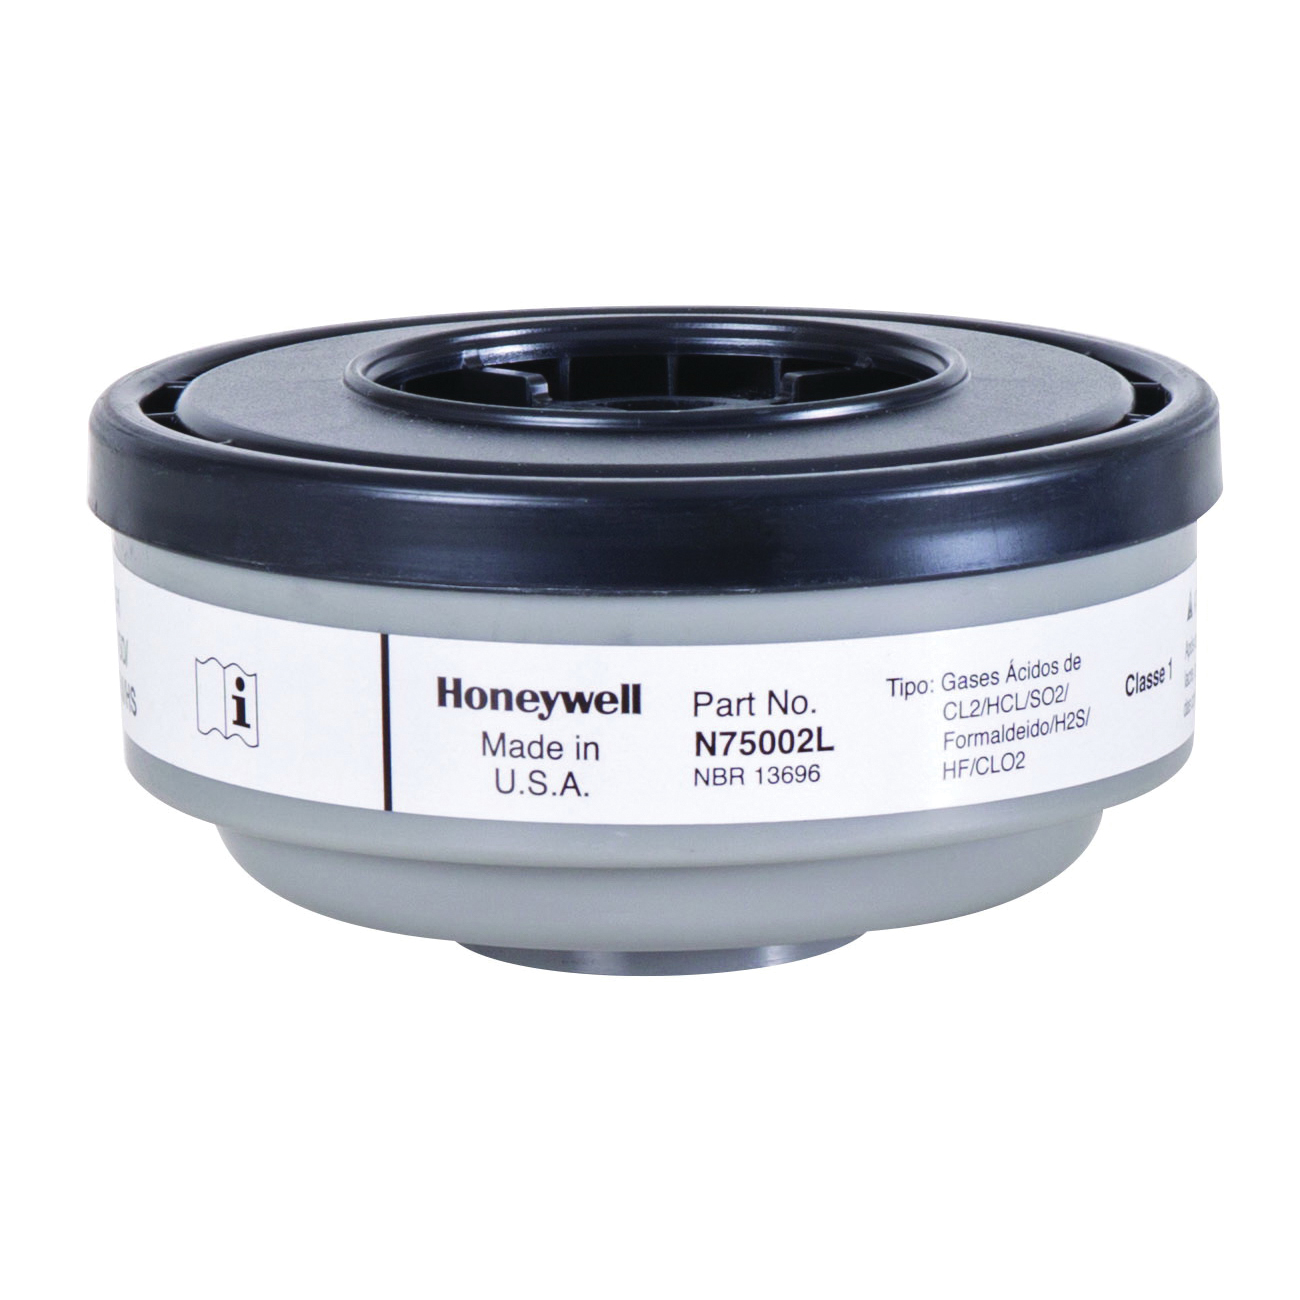 North® by Honeywell N75002L N Series APR Cartridge, For Use With 5400, 5500, 7600 and 7700 Series Respirators, Thread Connection, Resists: Chlorine, Chlorine Dioxide, Formaldehyde, Hydrogen Chloride, Hydrogen Fluoride and Sulfur Dioxide